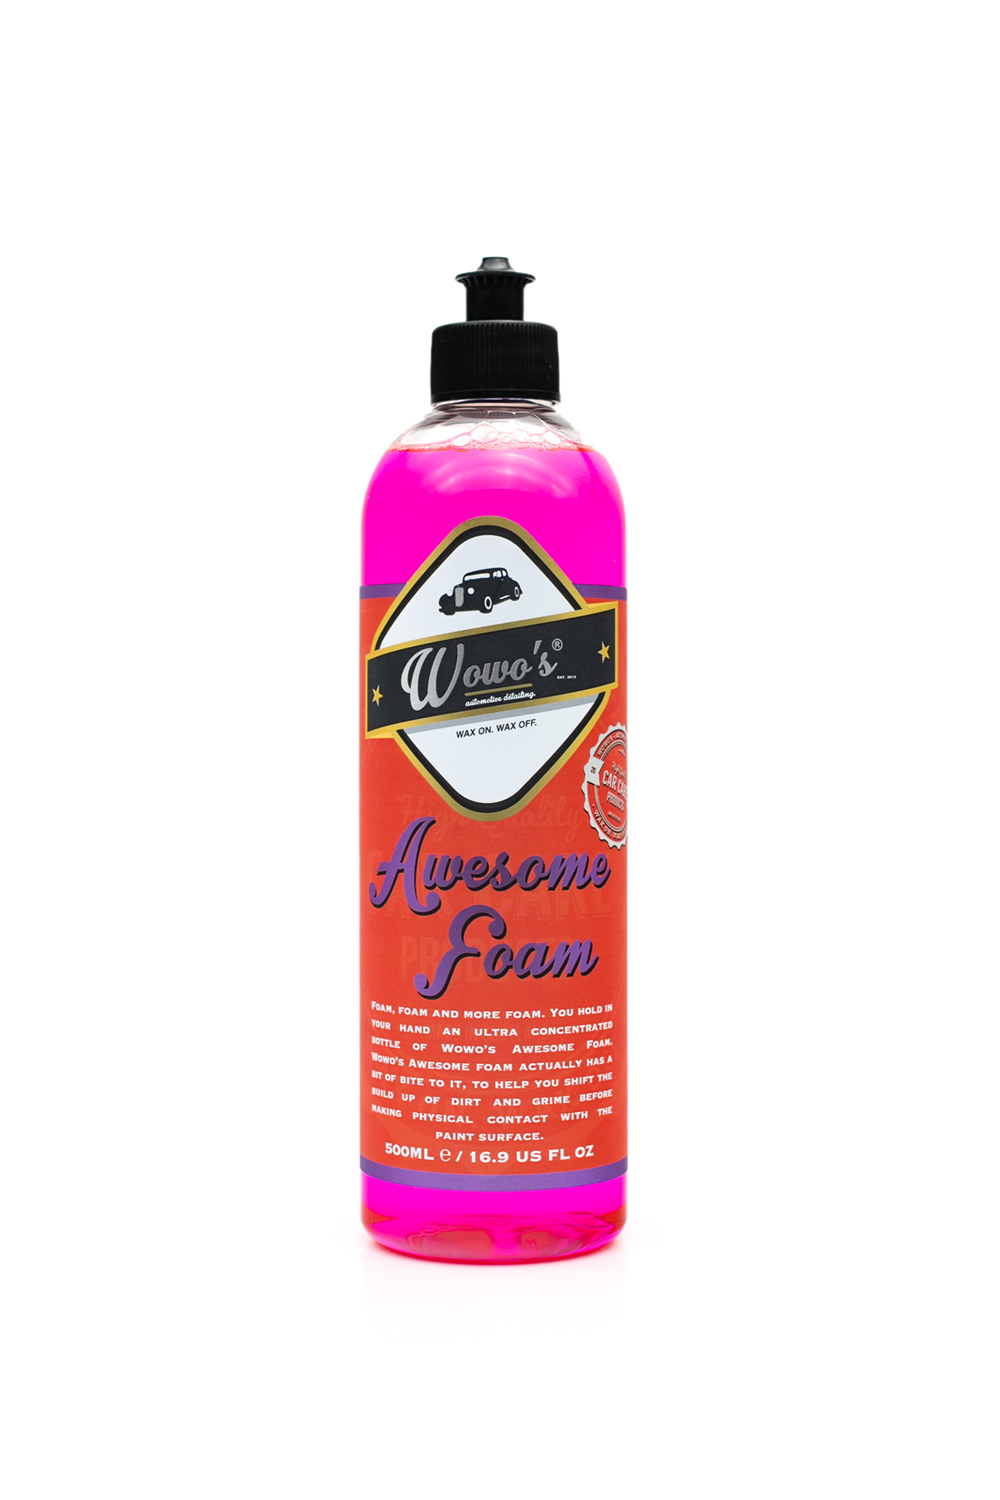 https://www.wowos.co.uk/wp-content/uploads/2016/06/wowos-awesome-foam-500ml-front.jpg